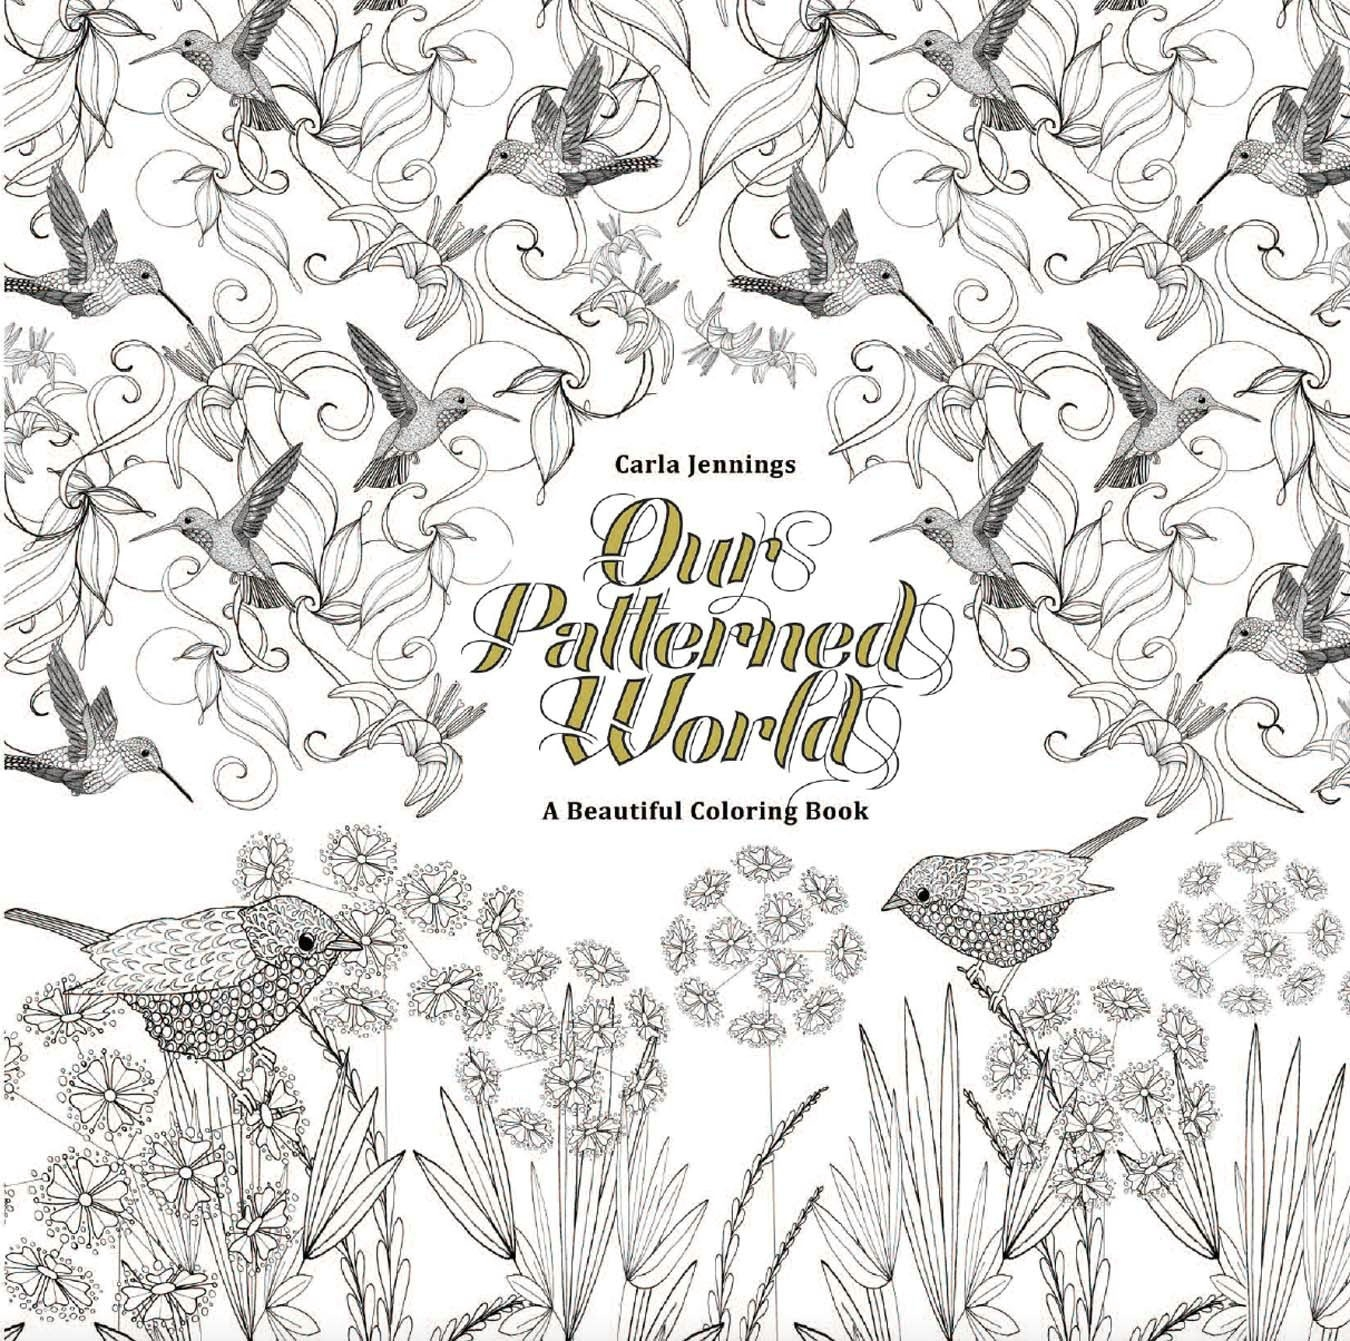 Our Patterned World A Beautiful Coloring Book by CARLA JENNINGS ...